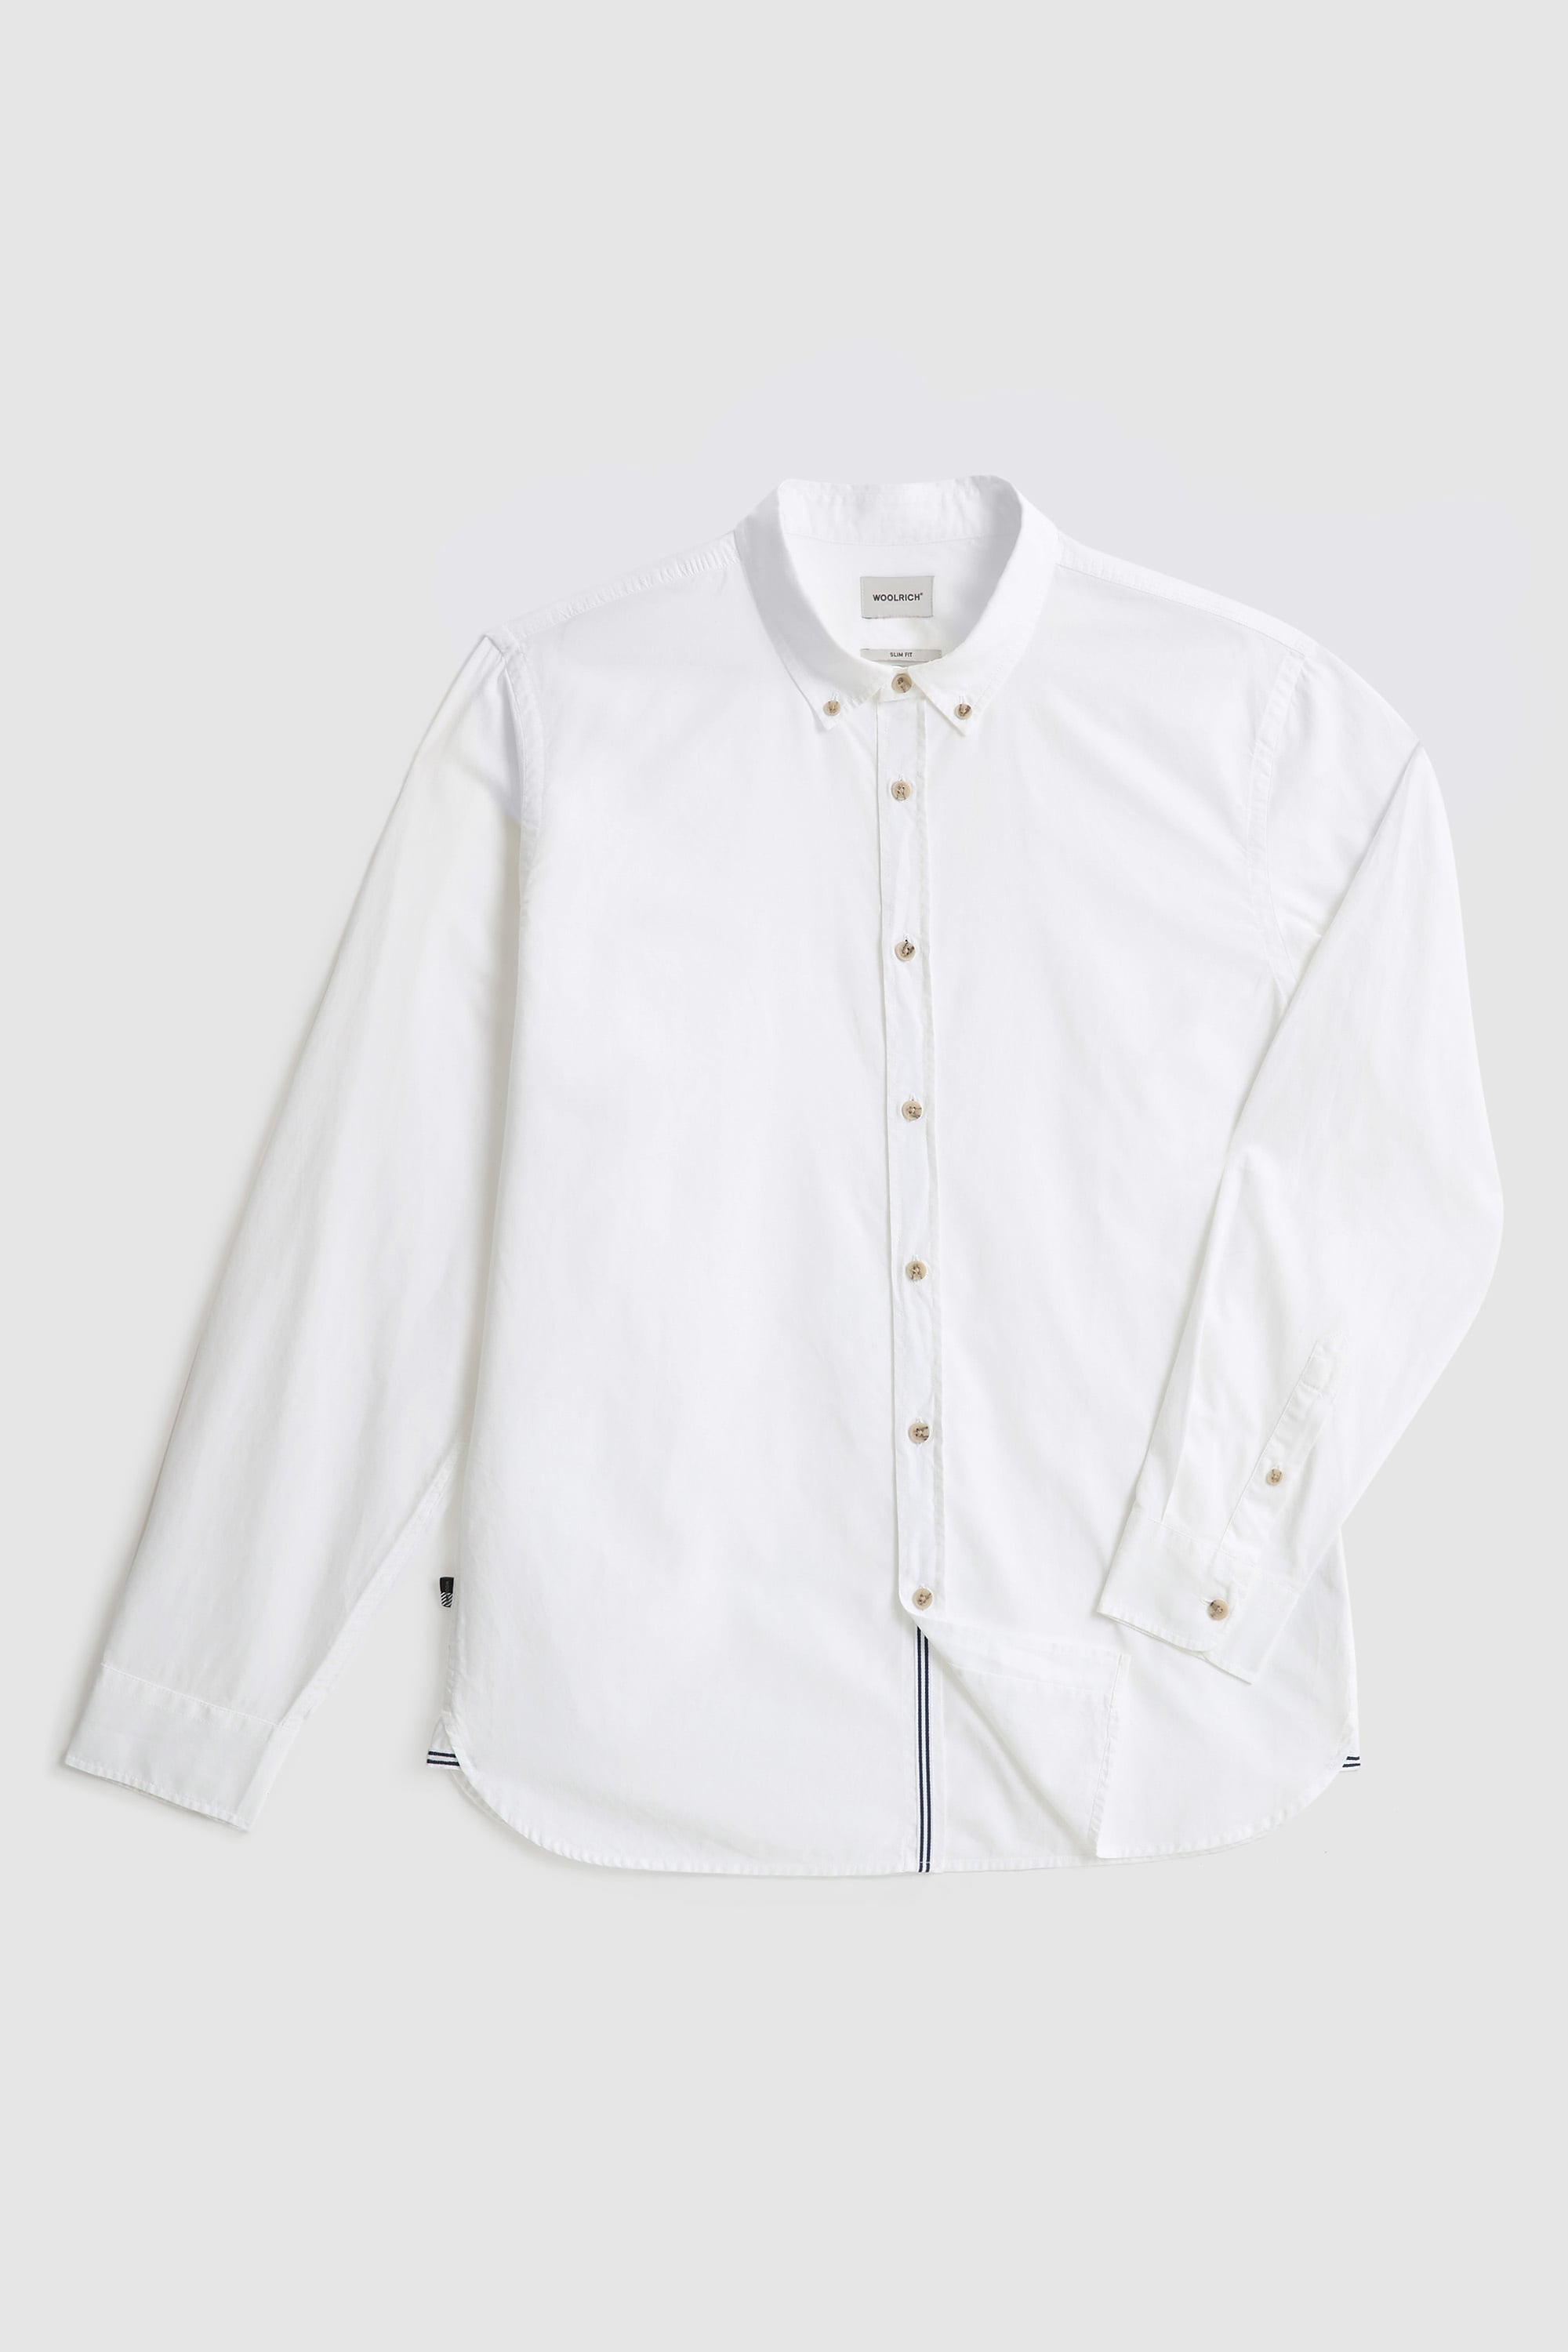 OXFORD GD SHIRT